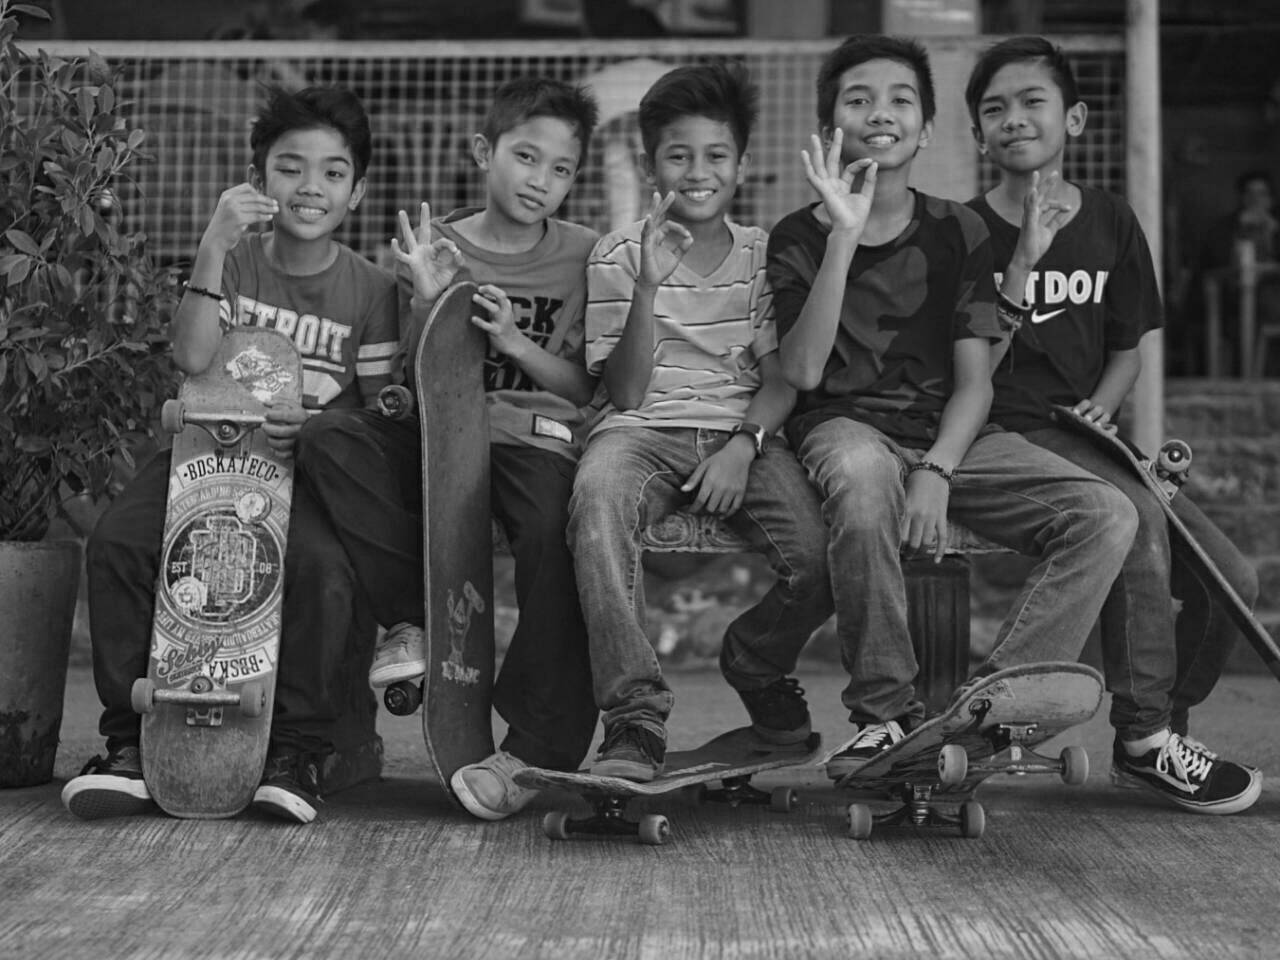 five kids posing with their own skateboard